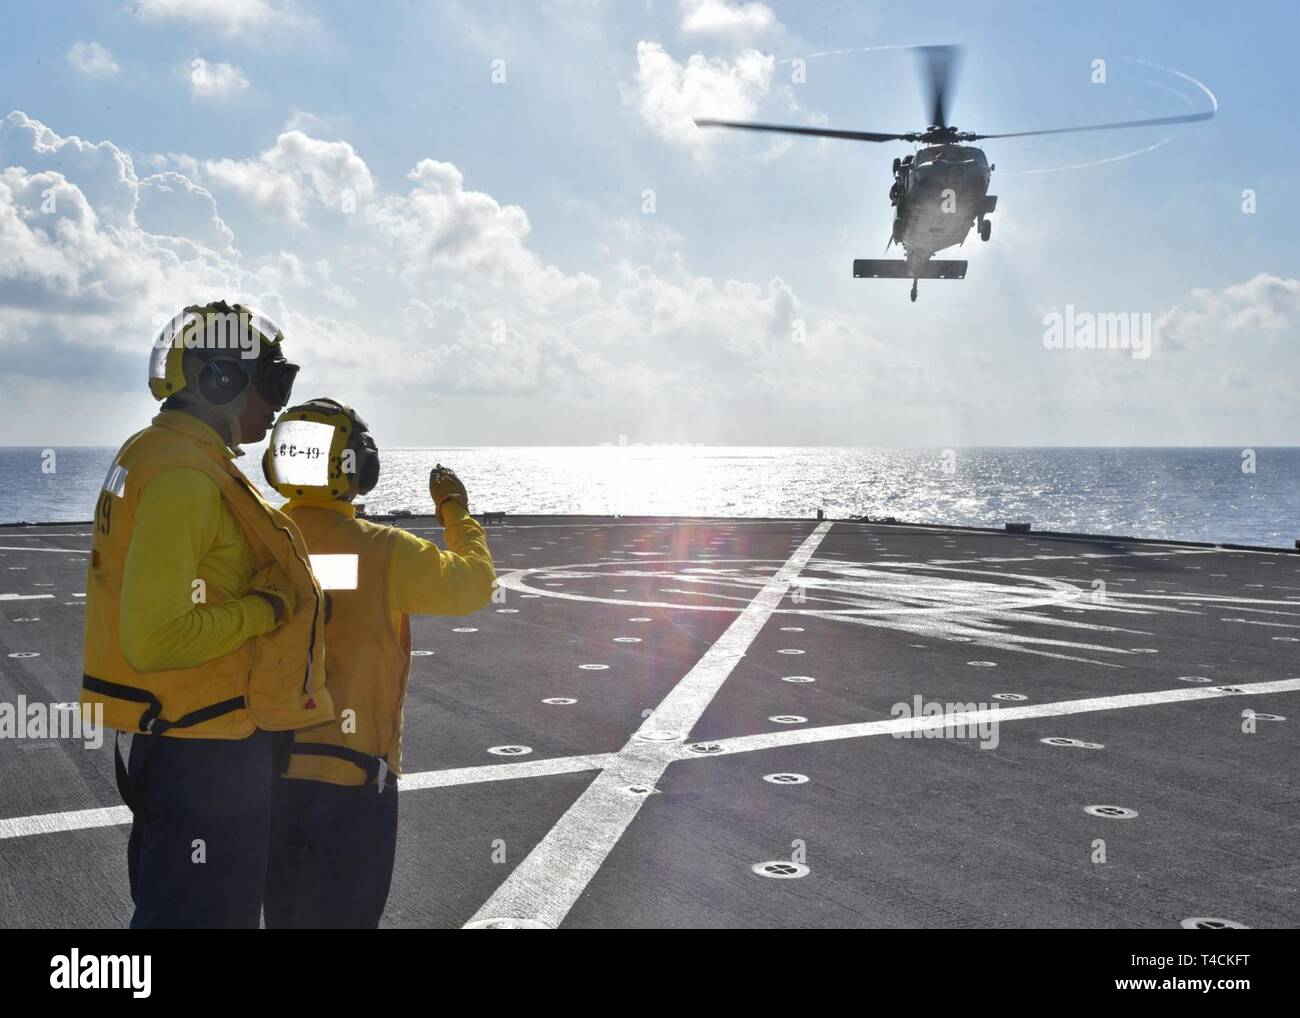 SOUTH CHINA SEA (March 20, 2019) - Boatswain's Mate 2nd Class Tyjhay McCain, from South Bend, Ind., and Boatswain's Mate Seaman Shawn Bernard Jr., from Atlanta, launch a MH-60S Sea Hawk helicopter from the Golden Falcons of Helicopter Sea Combat Squadron 12 during a vertical replenishment aboard U.S. 7th Fleet Flagship USS Blue Ridge (LCC 19). Blue Ridge is the oldest operational ship in the Navy and, as 7th Fleet command ship, actively works to foster relationships with allies and partners in the Indo-Pacific Region. - Stock Image